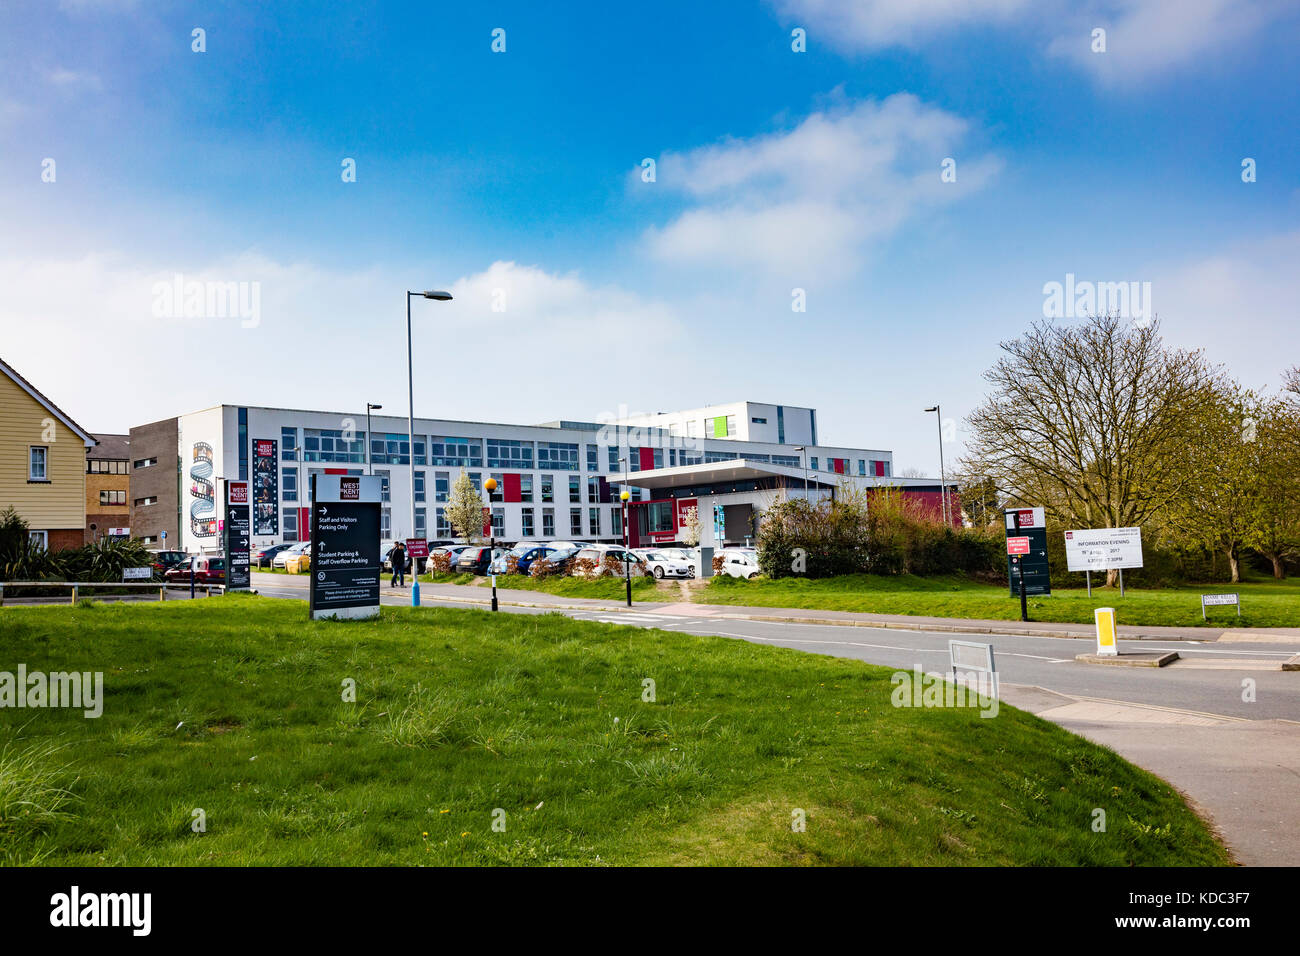 West Kent College, the main campus in Tonbridge, Kent, UK - Stock Image